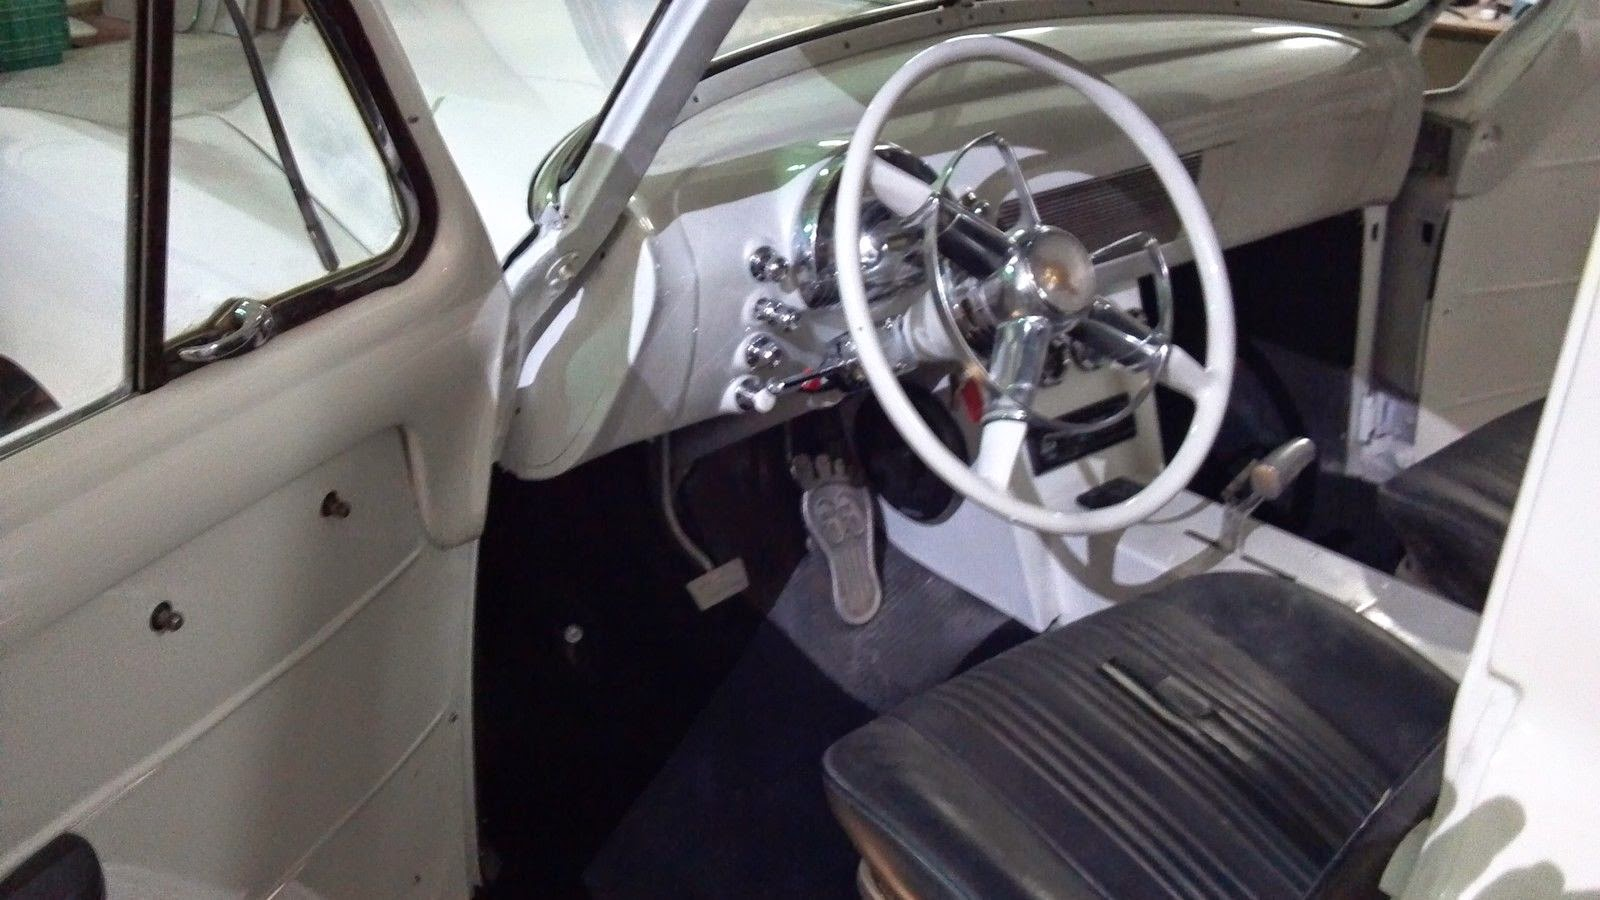 Daily Turismo 10k Oldsmocamino 1949 Oldsmobile Custom Pickup Chevy Truck Engine Swap Speaking Of Foolishness And Mayhemthe Barefoot Shaped Gas Pedal Rears Its Ugly Head Unfortunately The Seller Does Not Include A Good Detailed Set